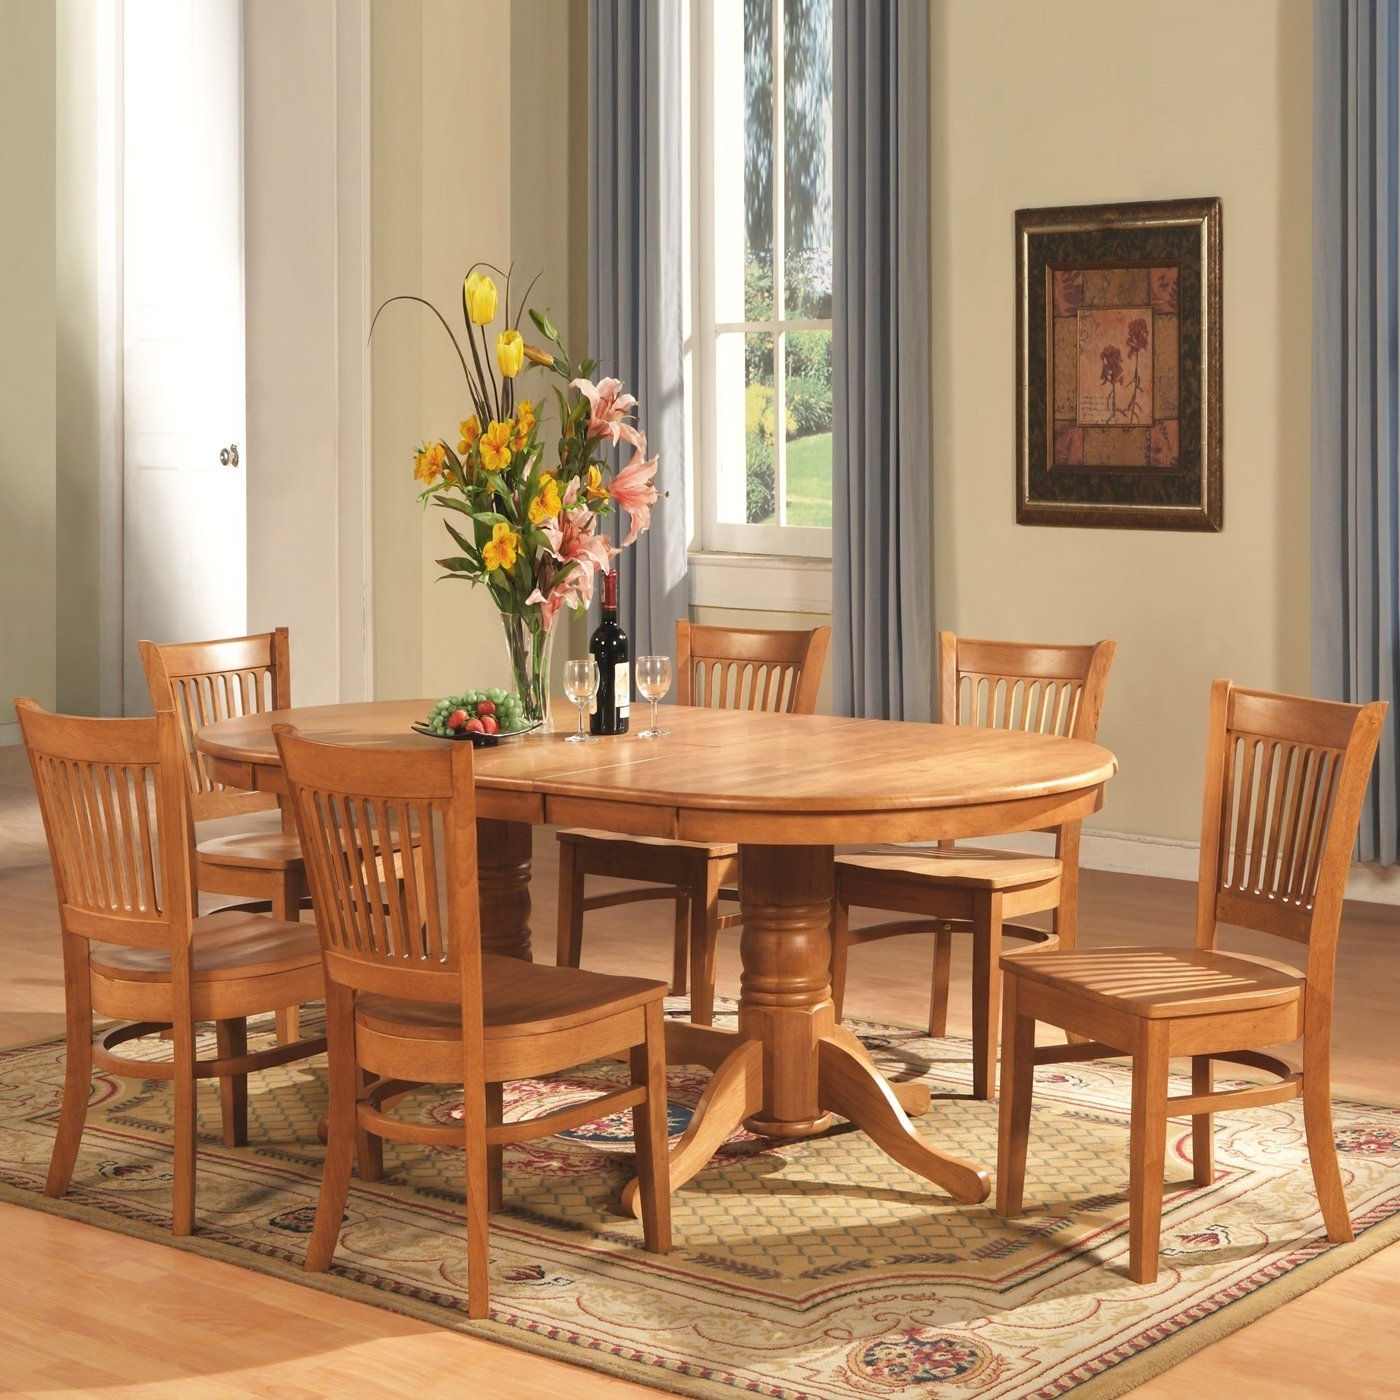 Newest Oval Oak Dining Tables And Chairs Regarding East West Furniture 8 Piece Vancouver Oval Table Dining Set, Oak (View 6 of 25)